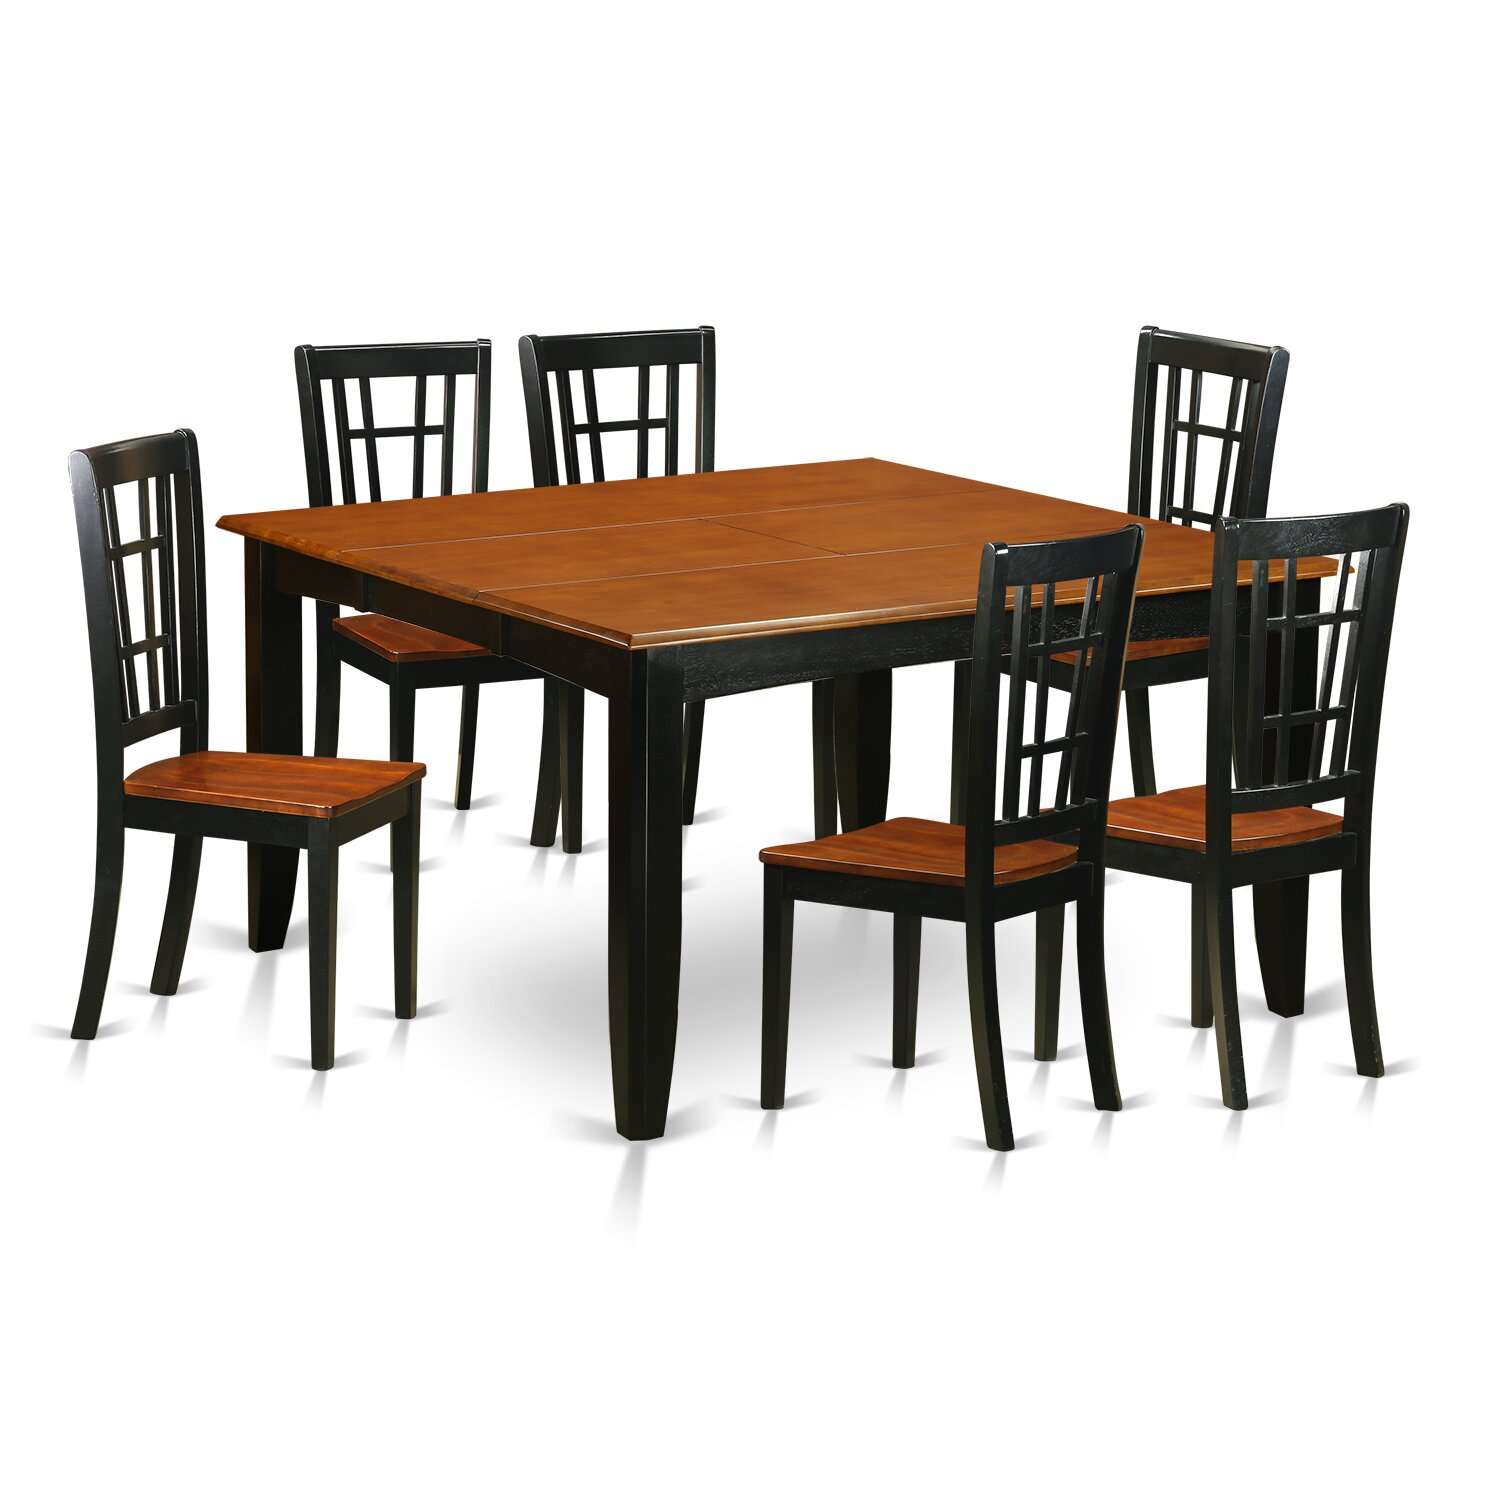 7 Piece Dining Set Of East West Parfait 7 Piece Dining Set Wayfair